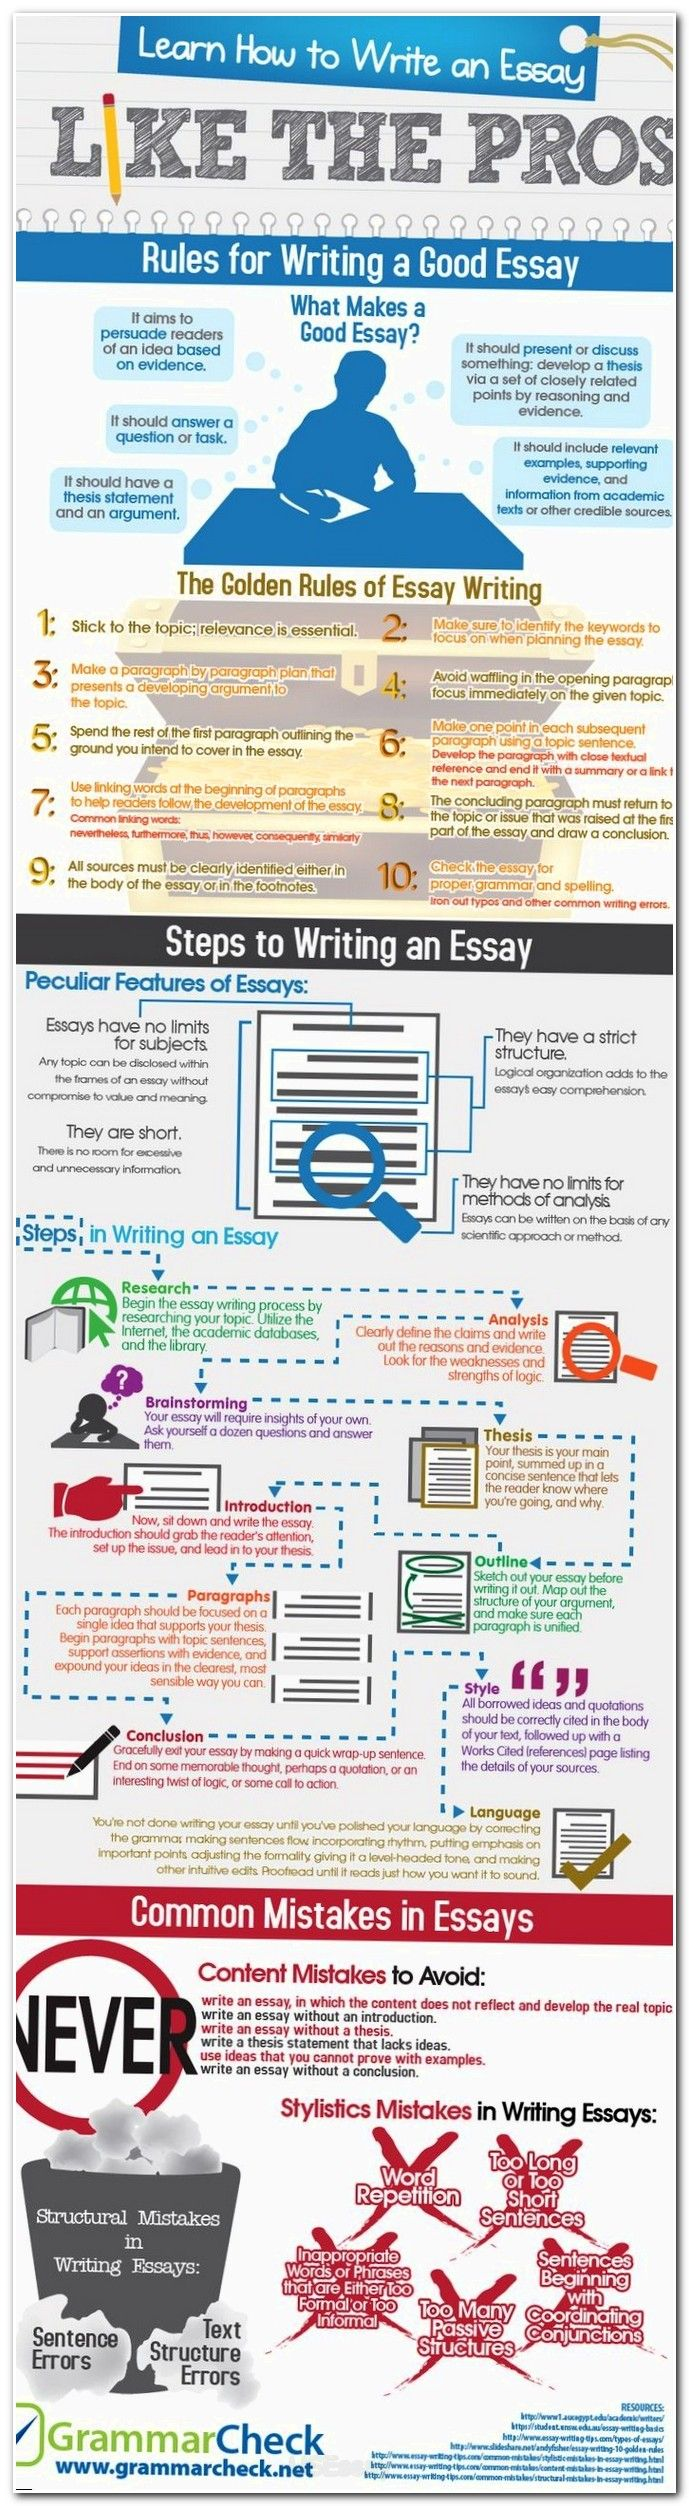 best paper writing service ideas essay writing essay wrightessay music important in our life sample paper of ielts writing